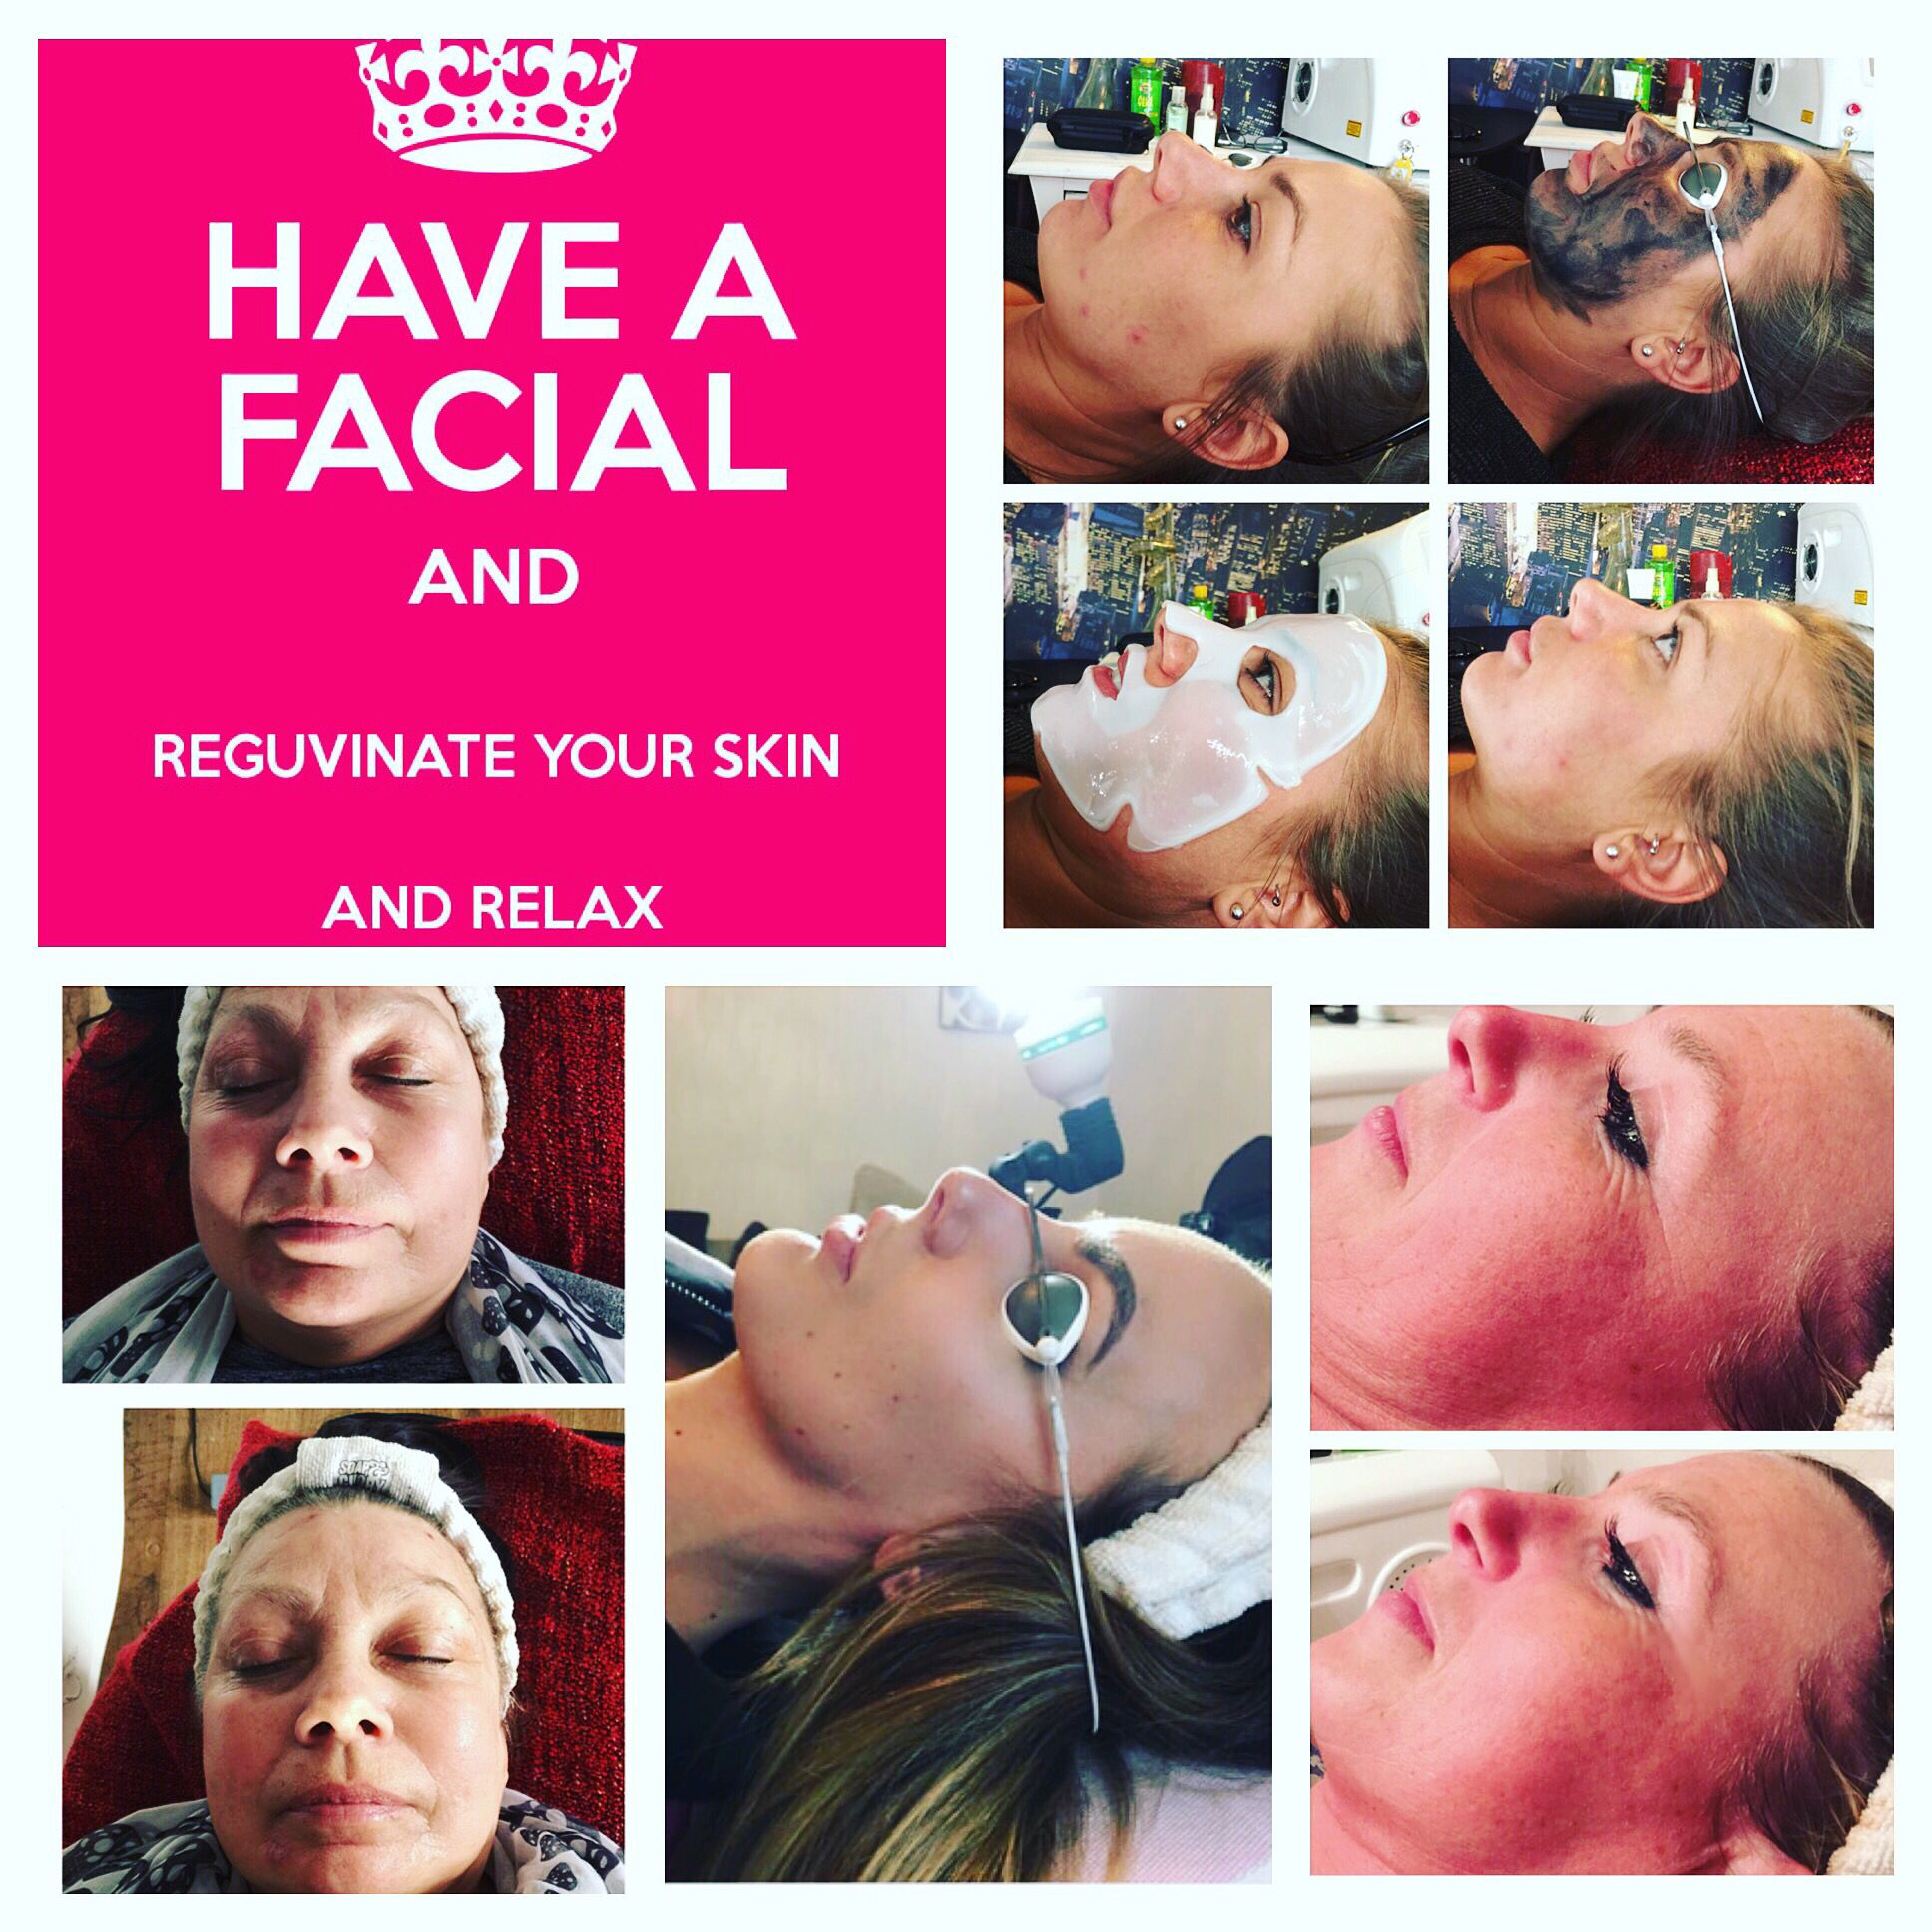 Before And After Pictures Of A Carbon Laser Facial Tattolaserremoval Tattooremoval Beauty Carbonfacials Laserfacials Ca Laser Facial Laser Removal Facial